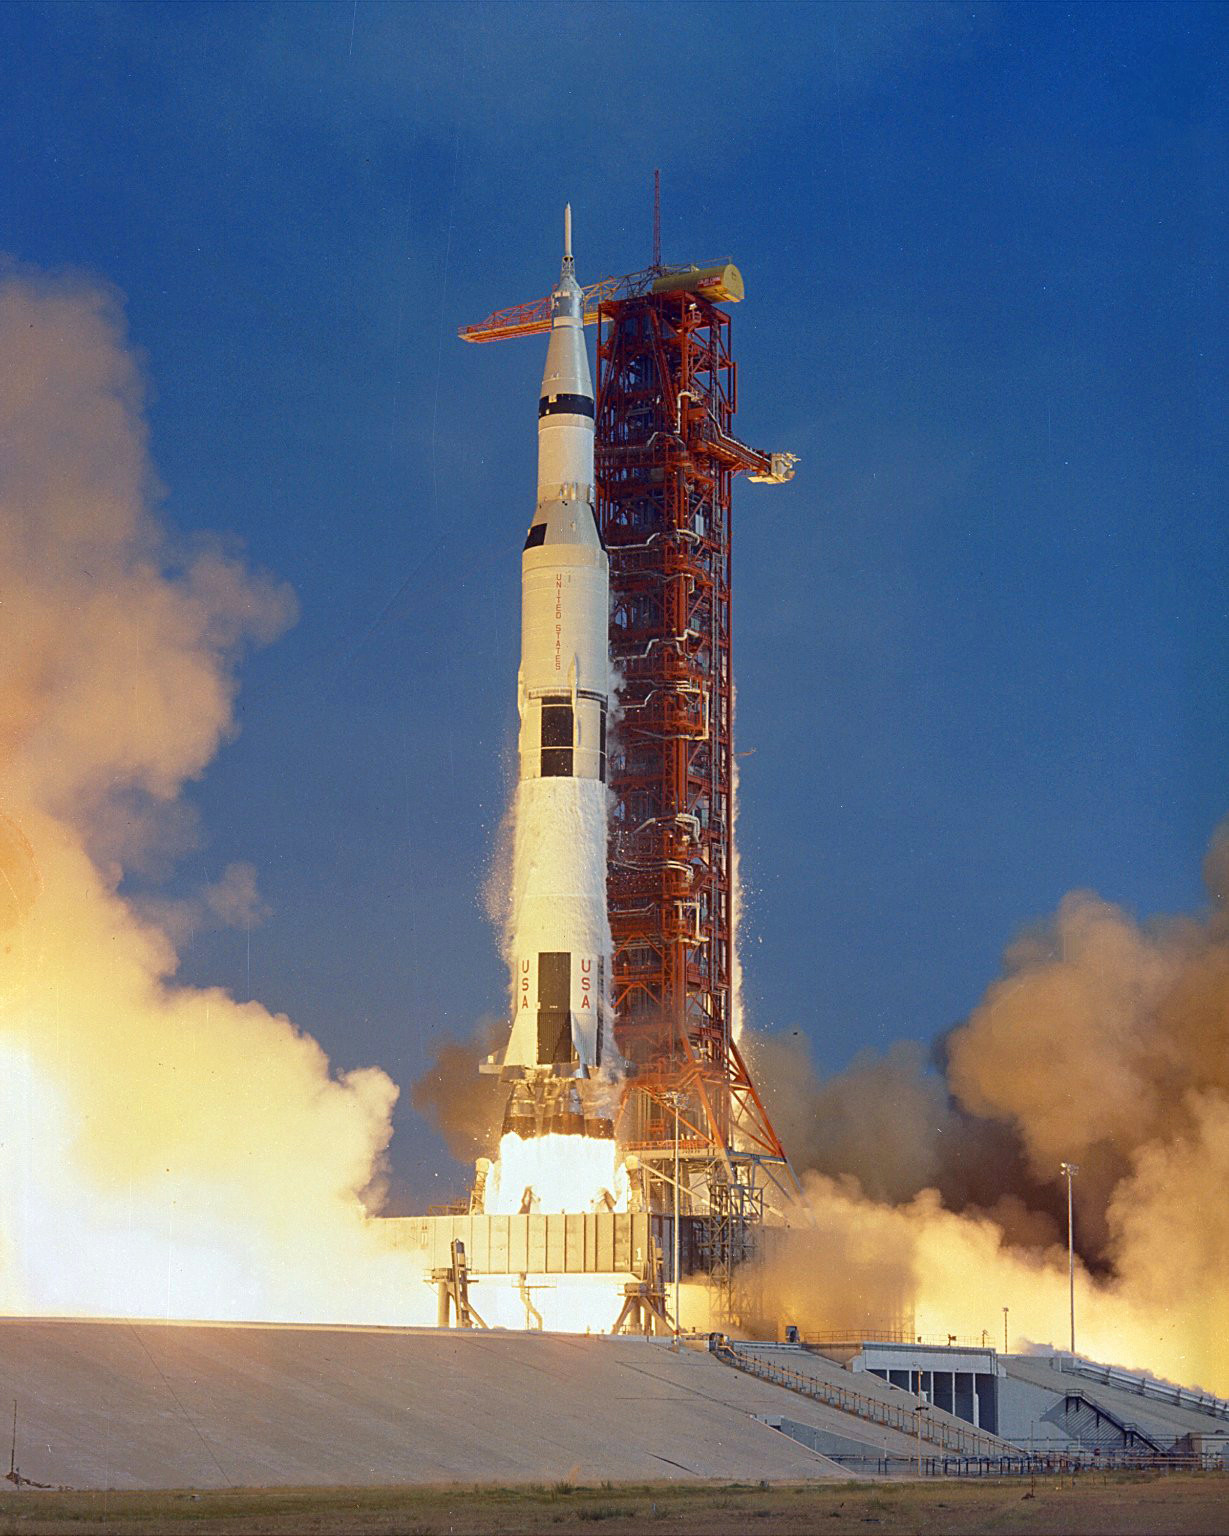 "The Apollo 11 Saturn V space vehicle lifts off with astronauts Neil Armstrong, Michael Collins and Edwin ""Buzz"" Aldrin in 1969."